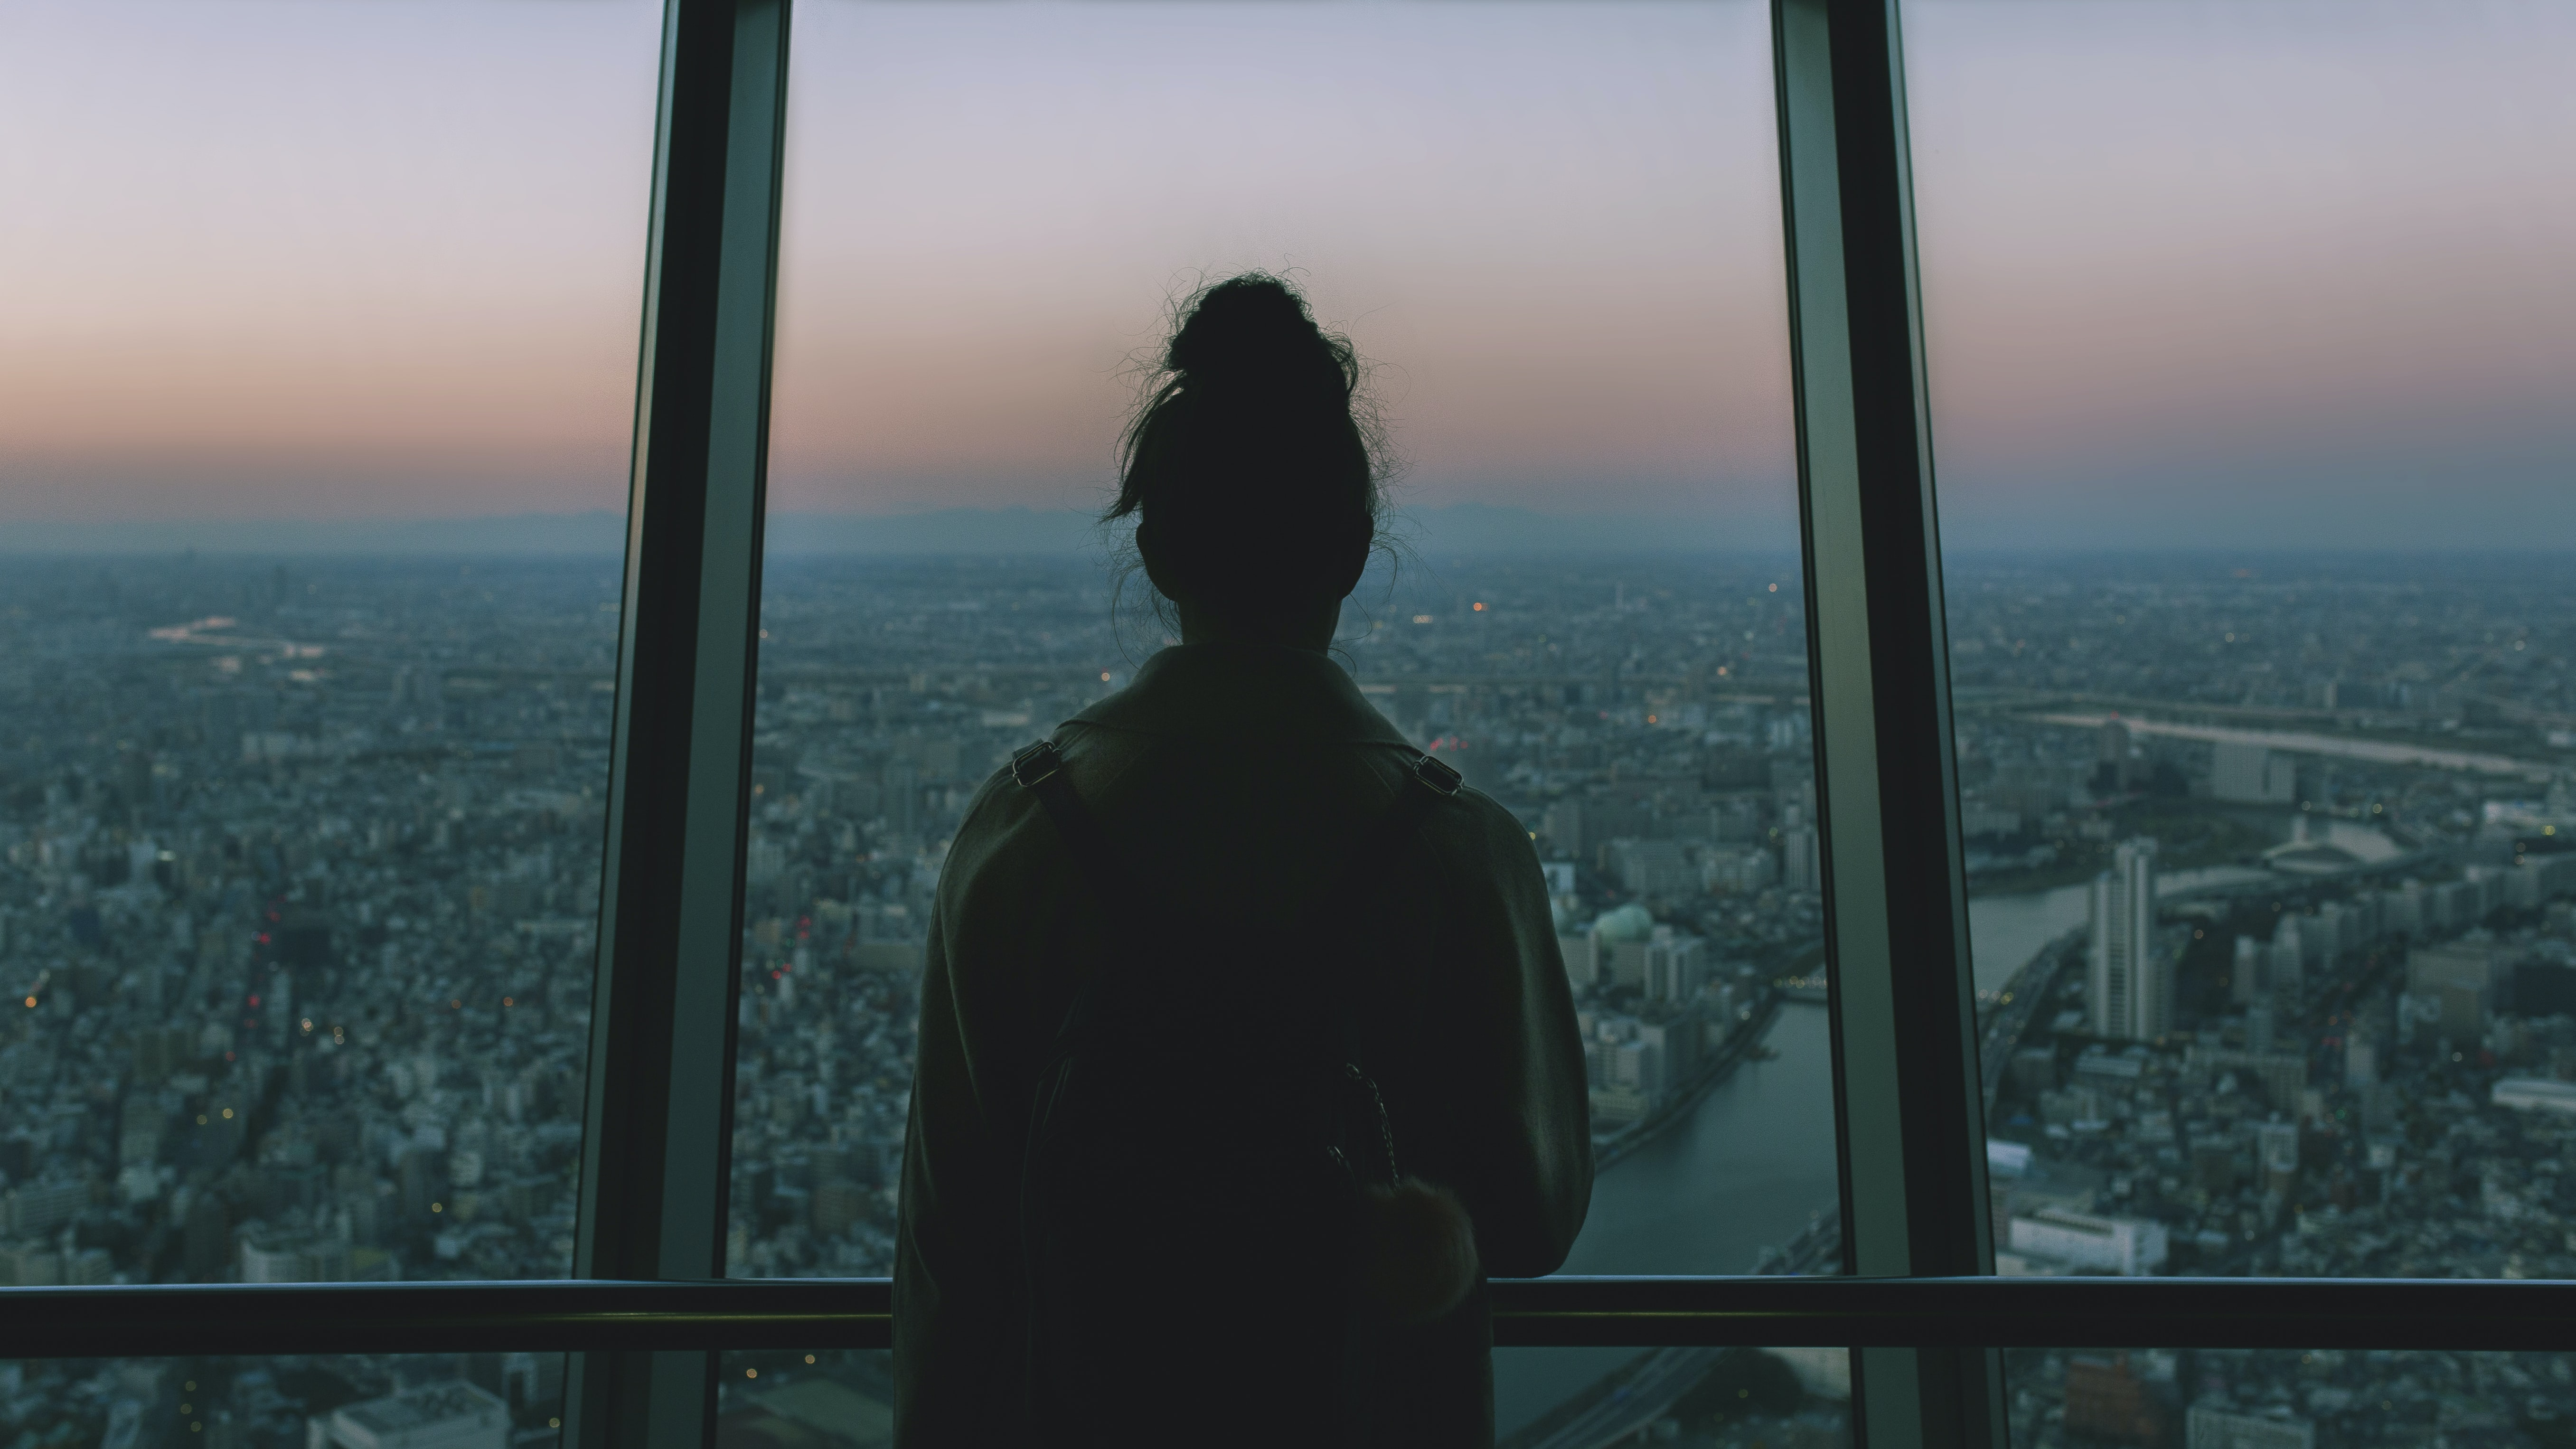 silhouette of person standing inside the building facing the glass mirror watching the city